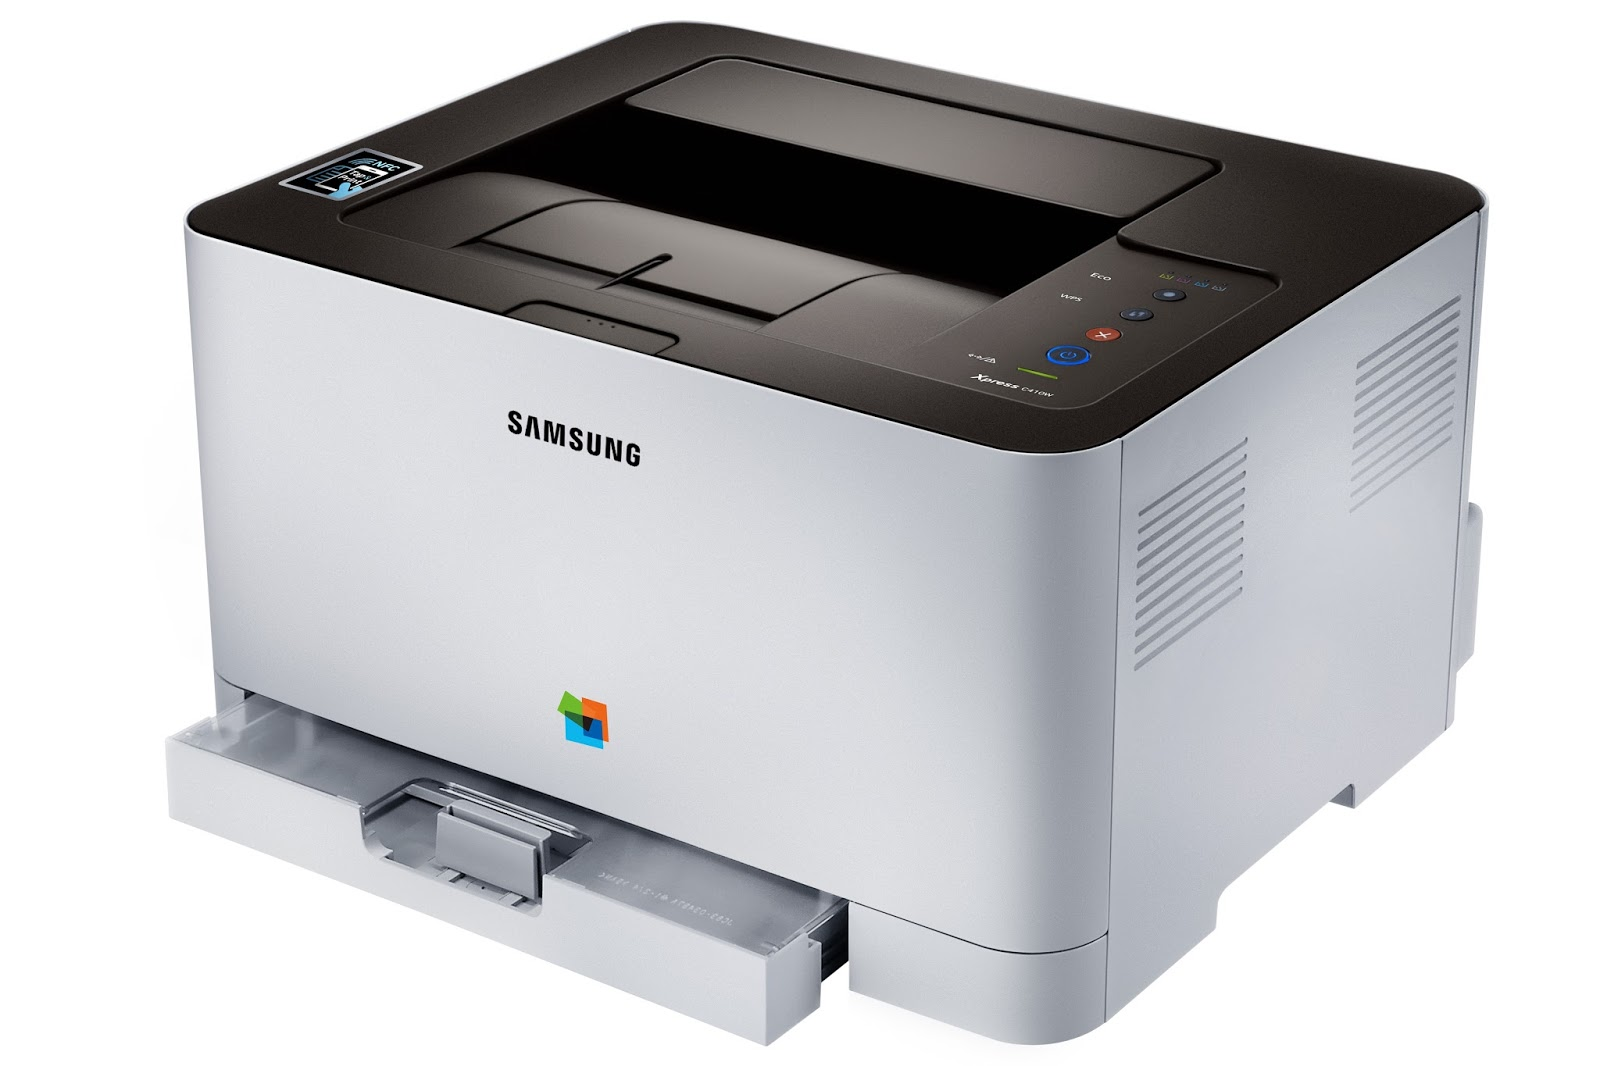 SAMSUNG SCX-4725F PRINTER UNIFIED WINDOWS 8 X64 TREIBER